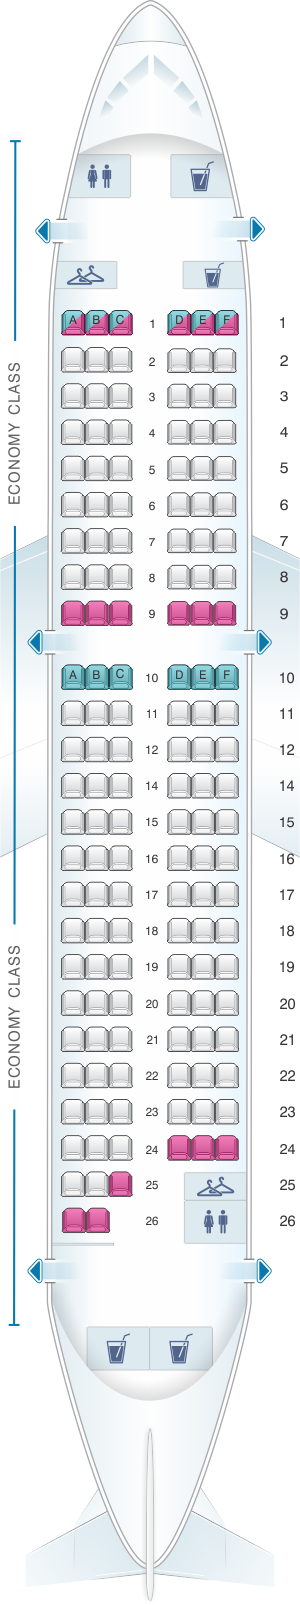 Seat map for Air France Airbus A319 Metropolitan V2